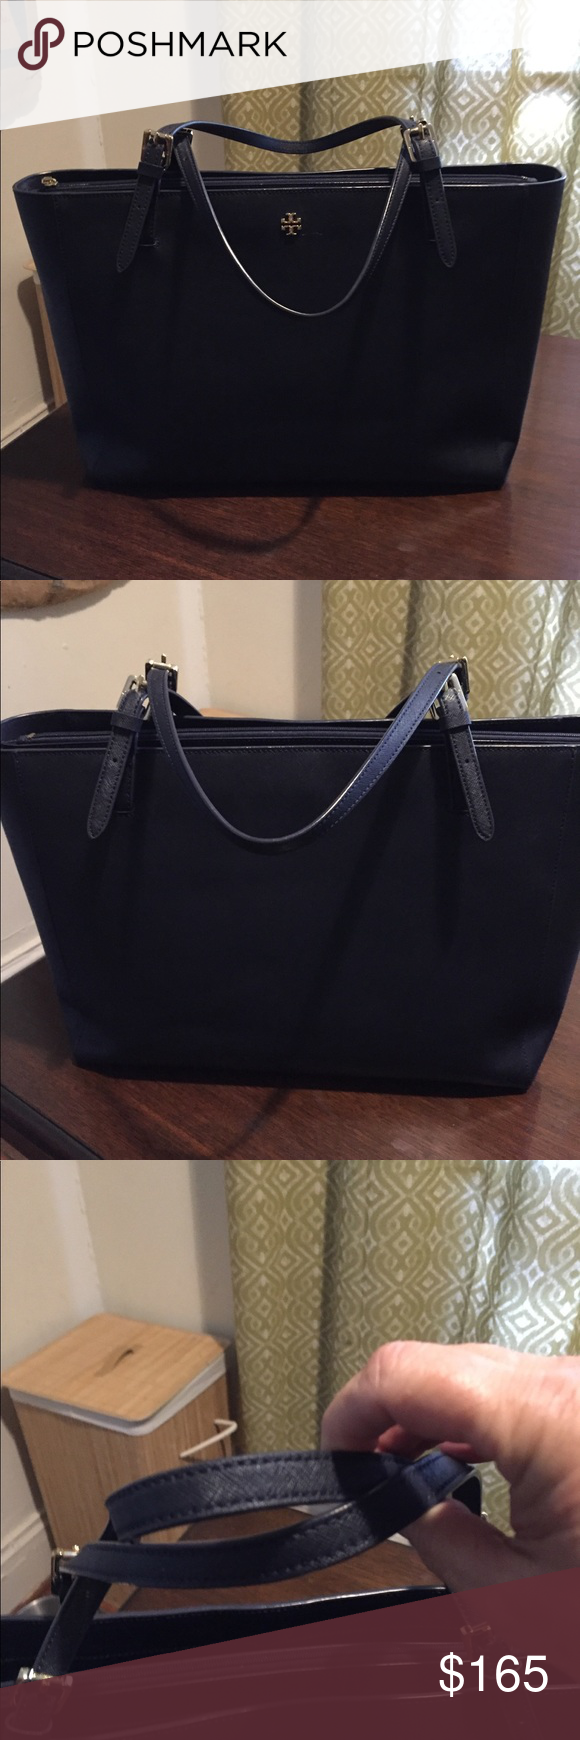 182068df0919c Tory Burch Large York Buckle tote Excellent used Tory Burch York Tote. Size  in photos. Will carry all your essentials including a small laptop or iPad.  I m ...